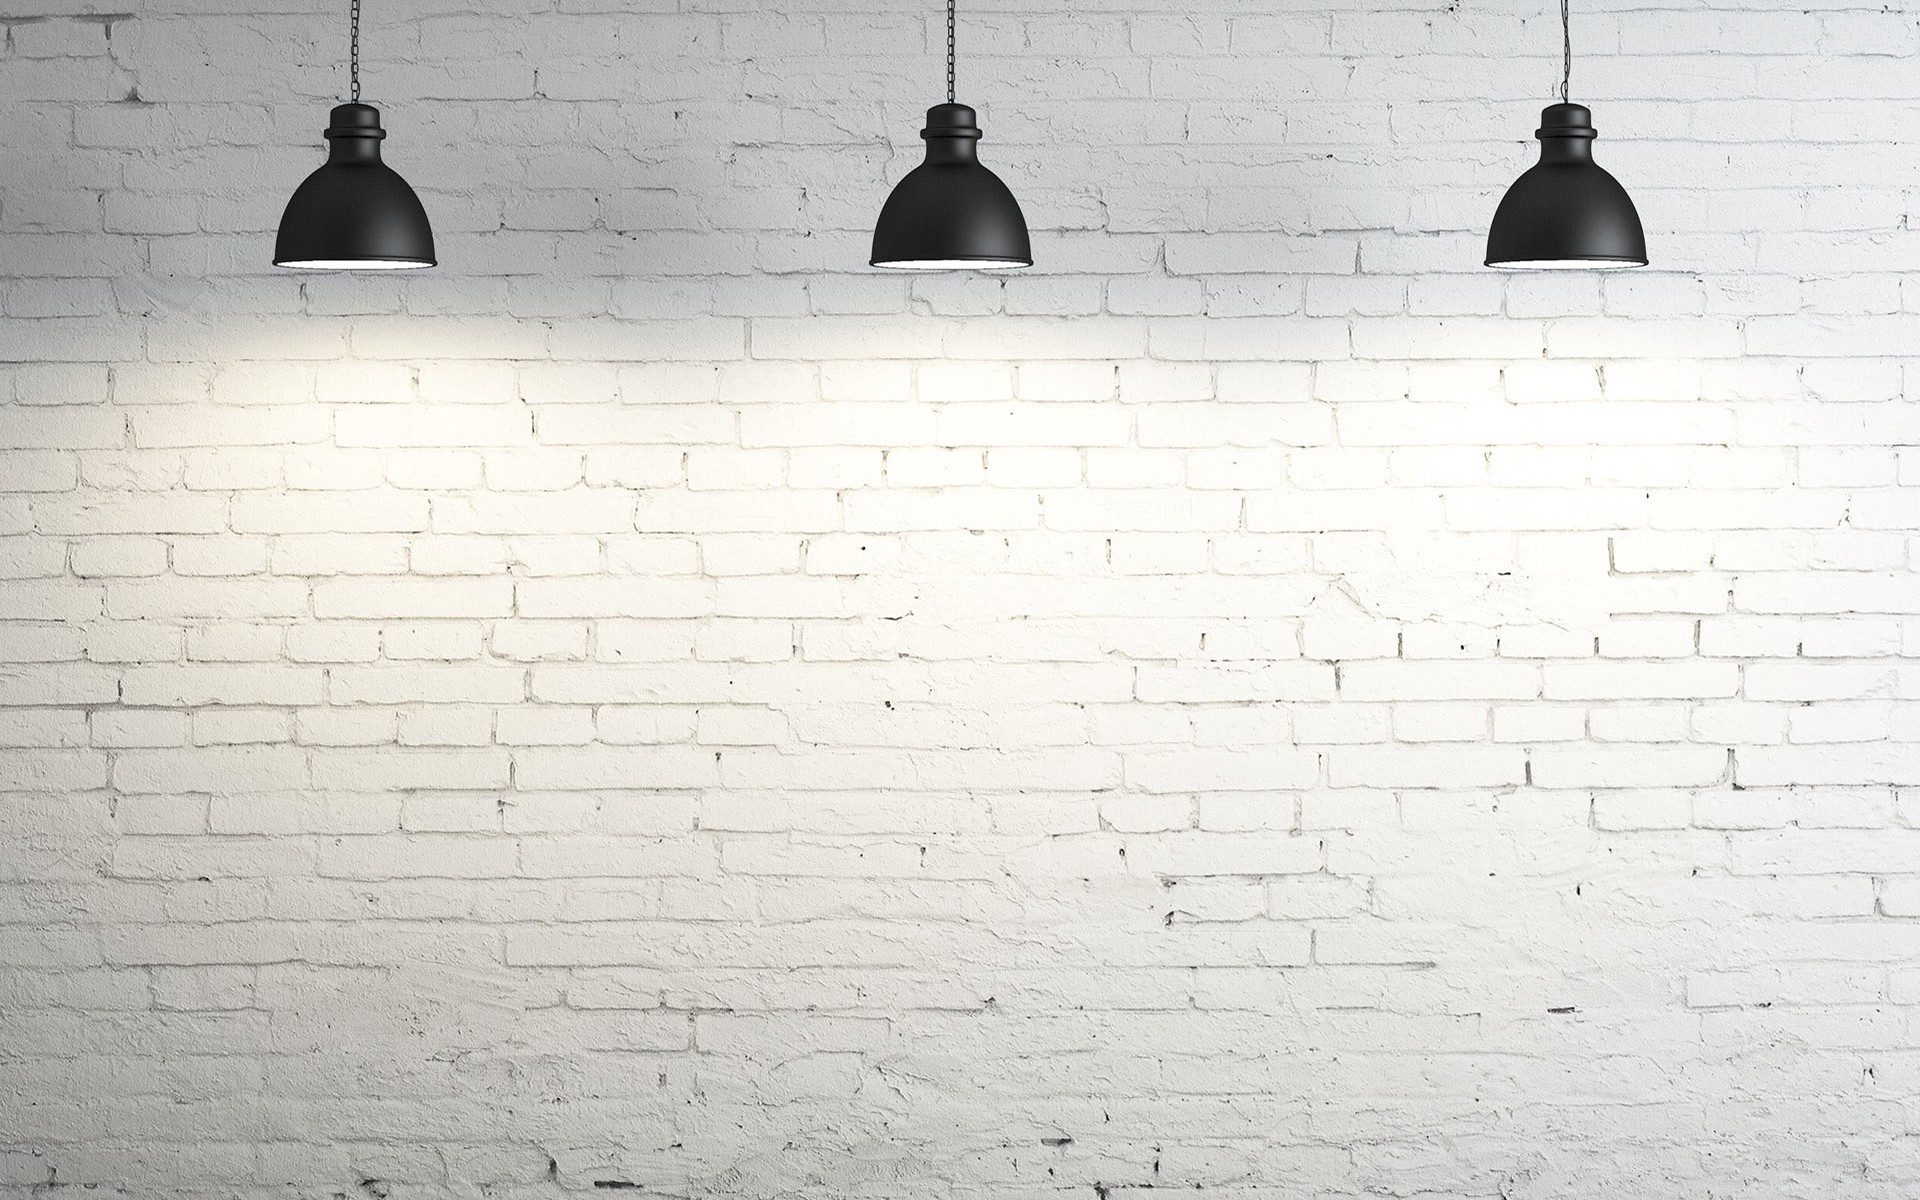 White Brick Wallpaper 183 ① Download Free Awesome High